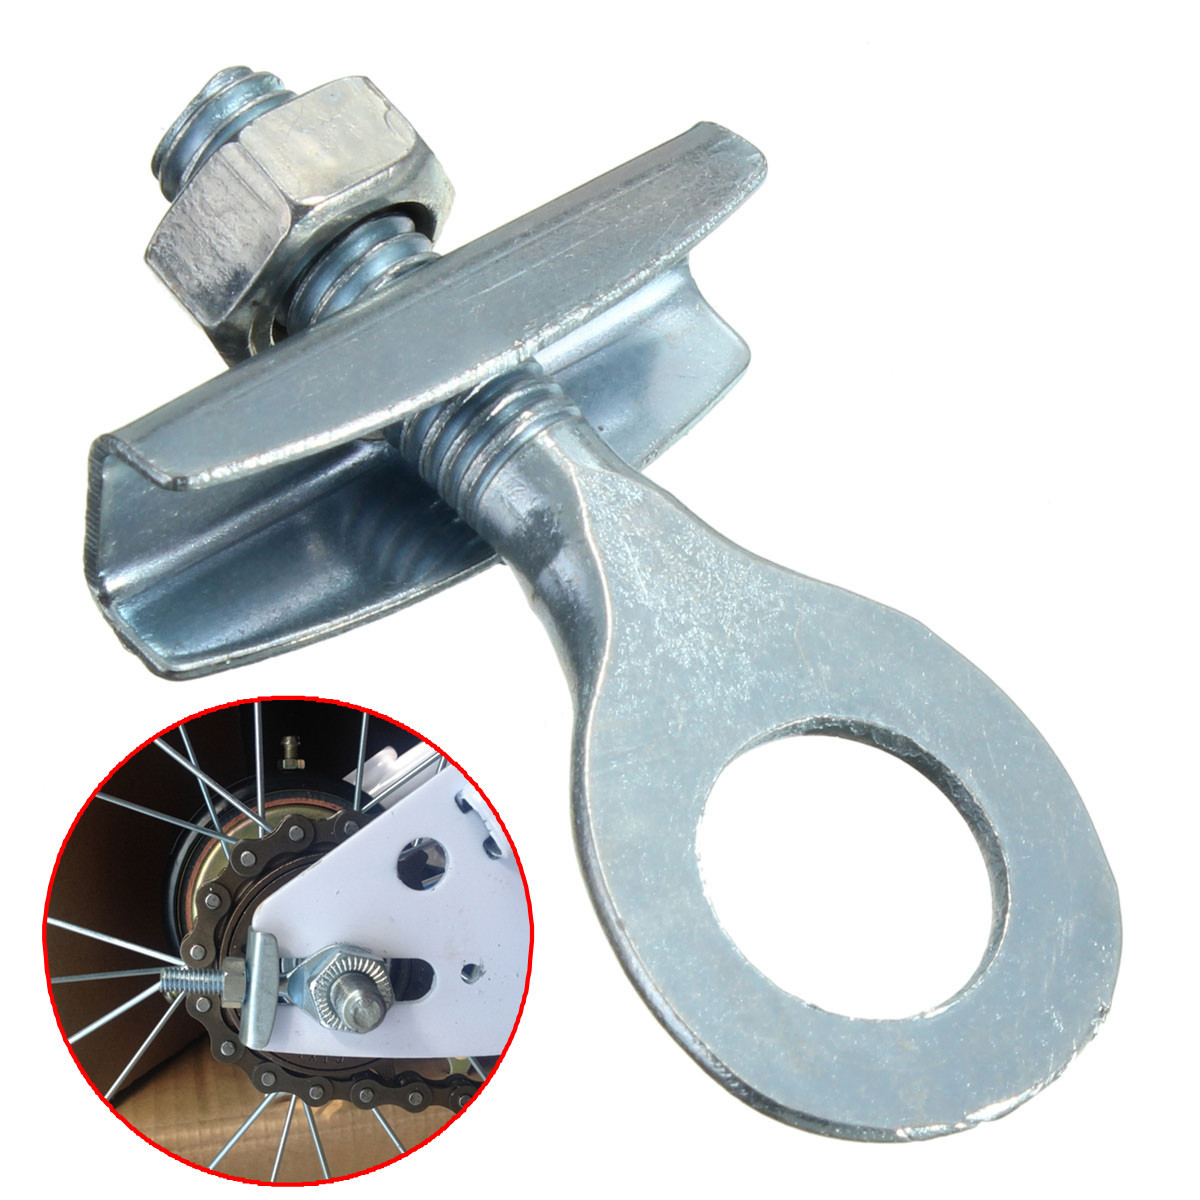 Buy Bike Chain Tensioner Adjuster For Fixie Fixed Gear Single Speed Track Bicycle